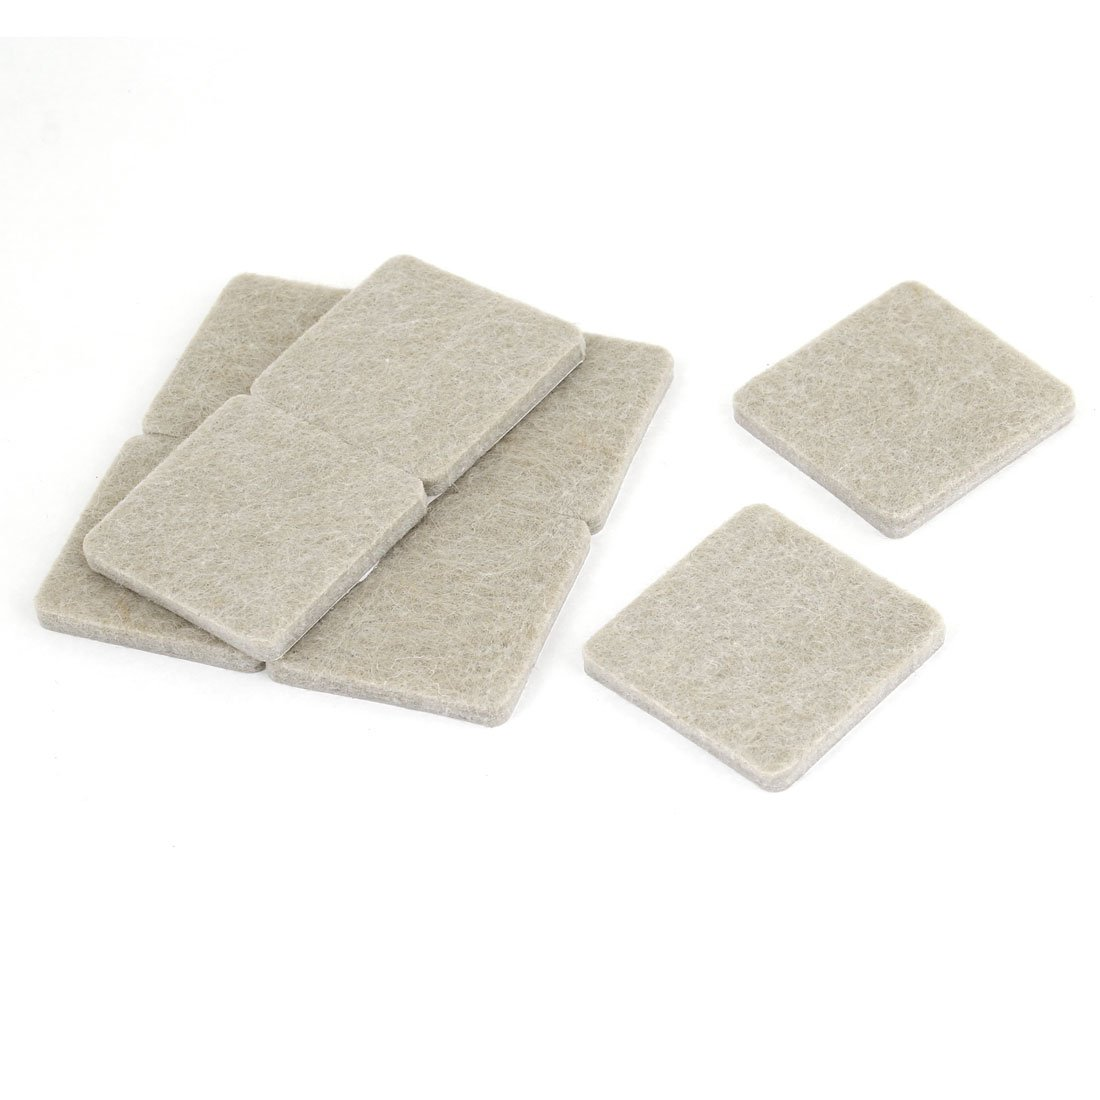 8 Pcs Home Table Chair Leg Protection Square Felt Cushion Pad Gray